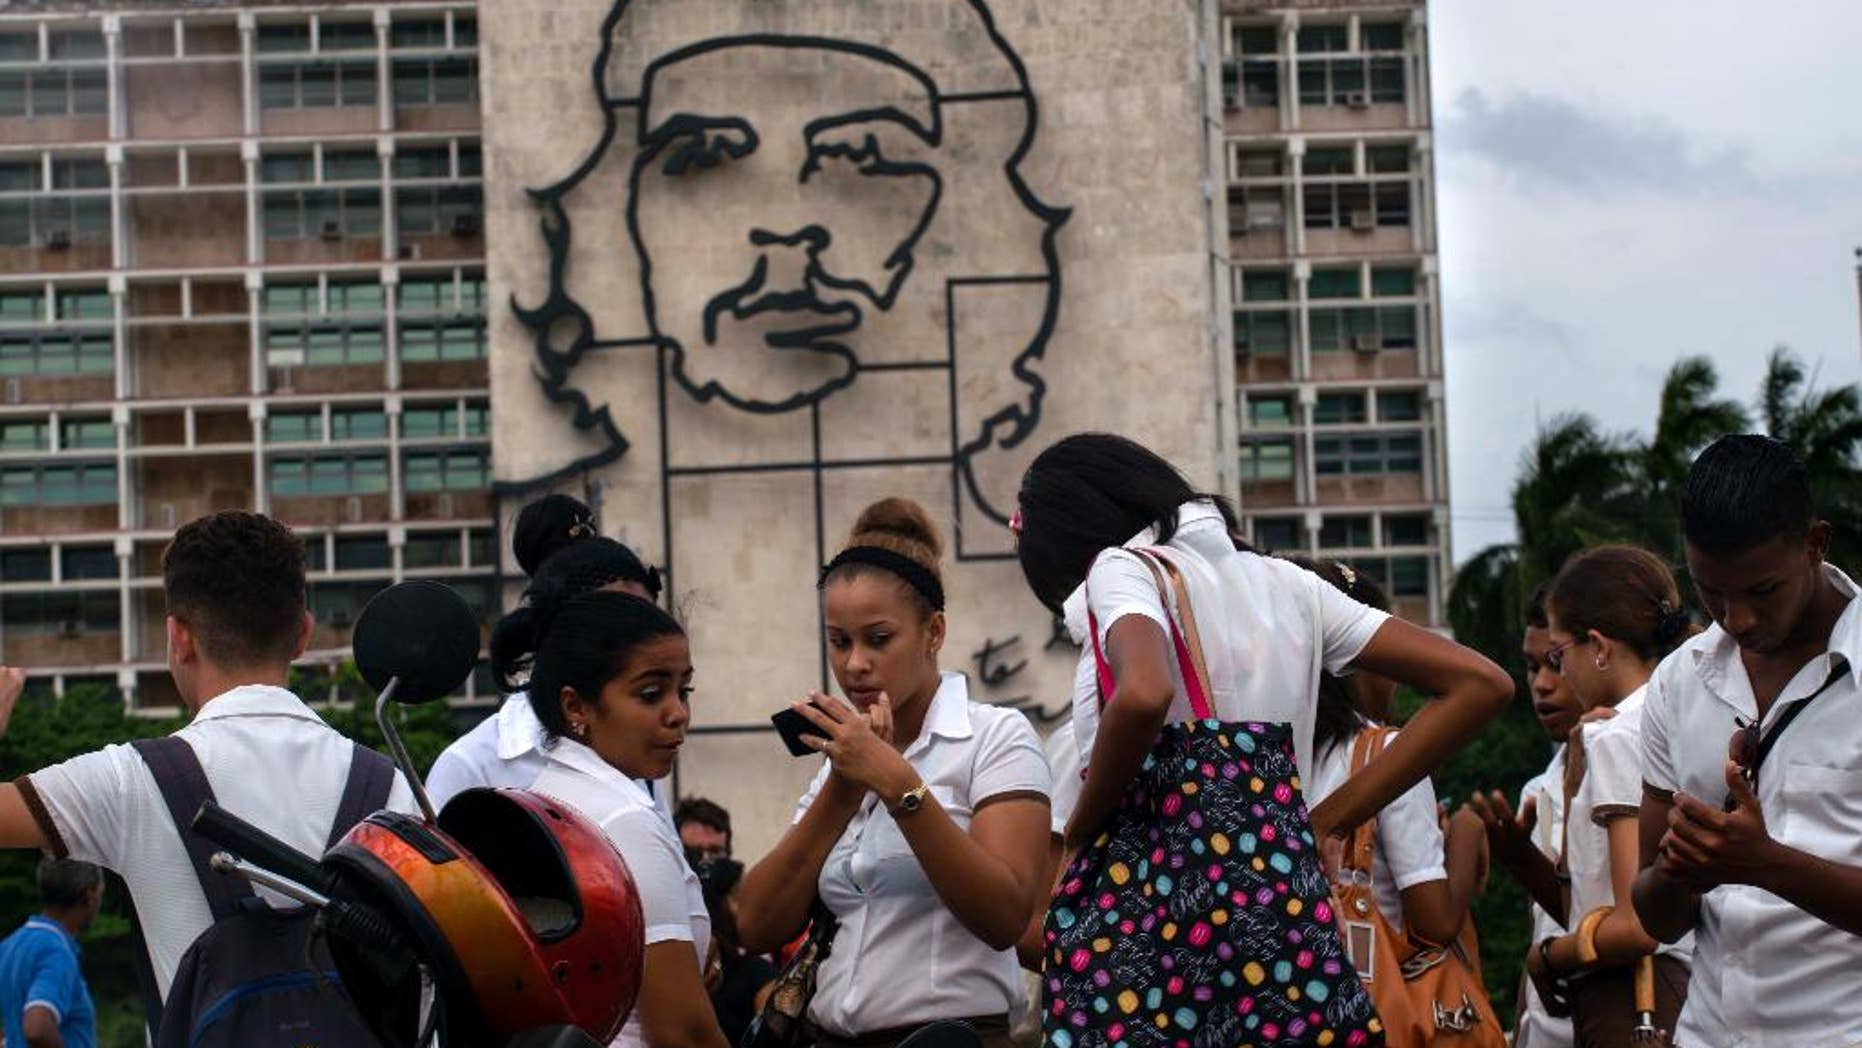 """Students stand in Revolution Square next to the sculpture of revolutionary hero Ernesto """"Che"""" Guevara, where the Pope Francis will give a Mass next Sunday in Havana, Cuba,Thursday, Sept. 17, 2015. (AP Photo/Ramon Espinosa)"""